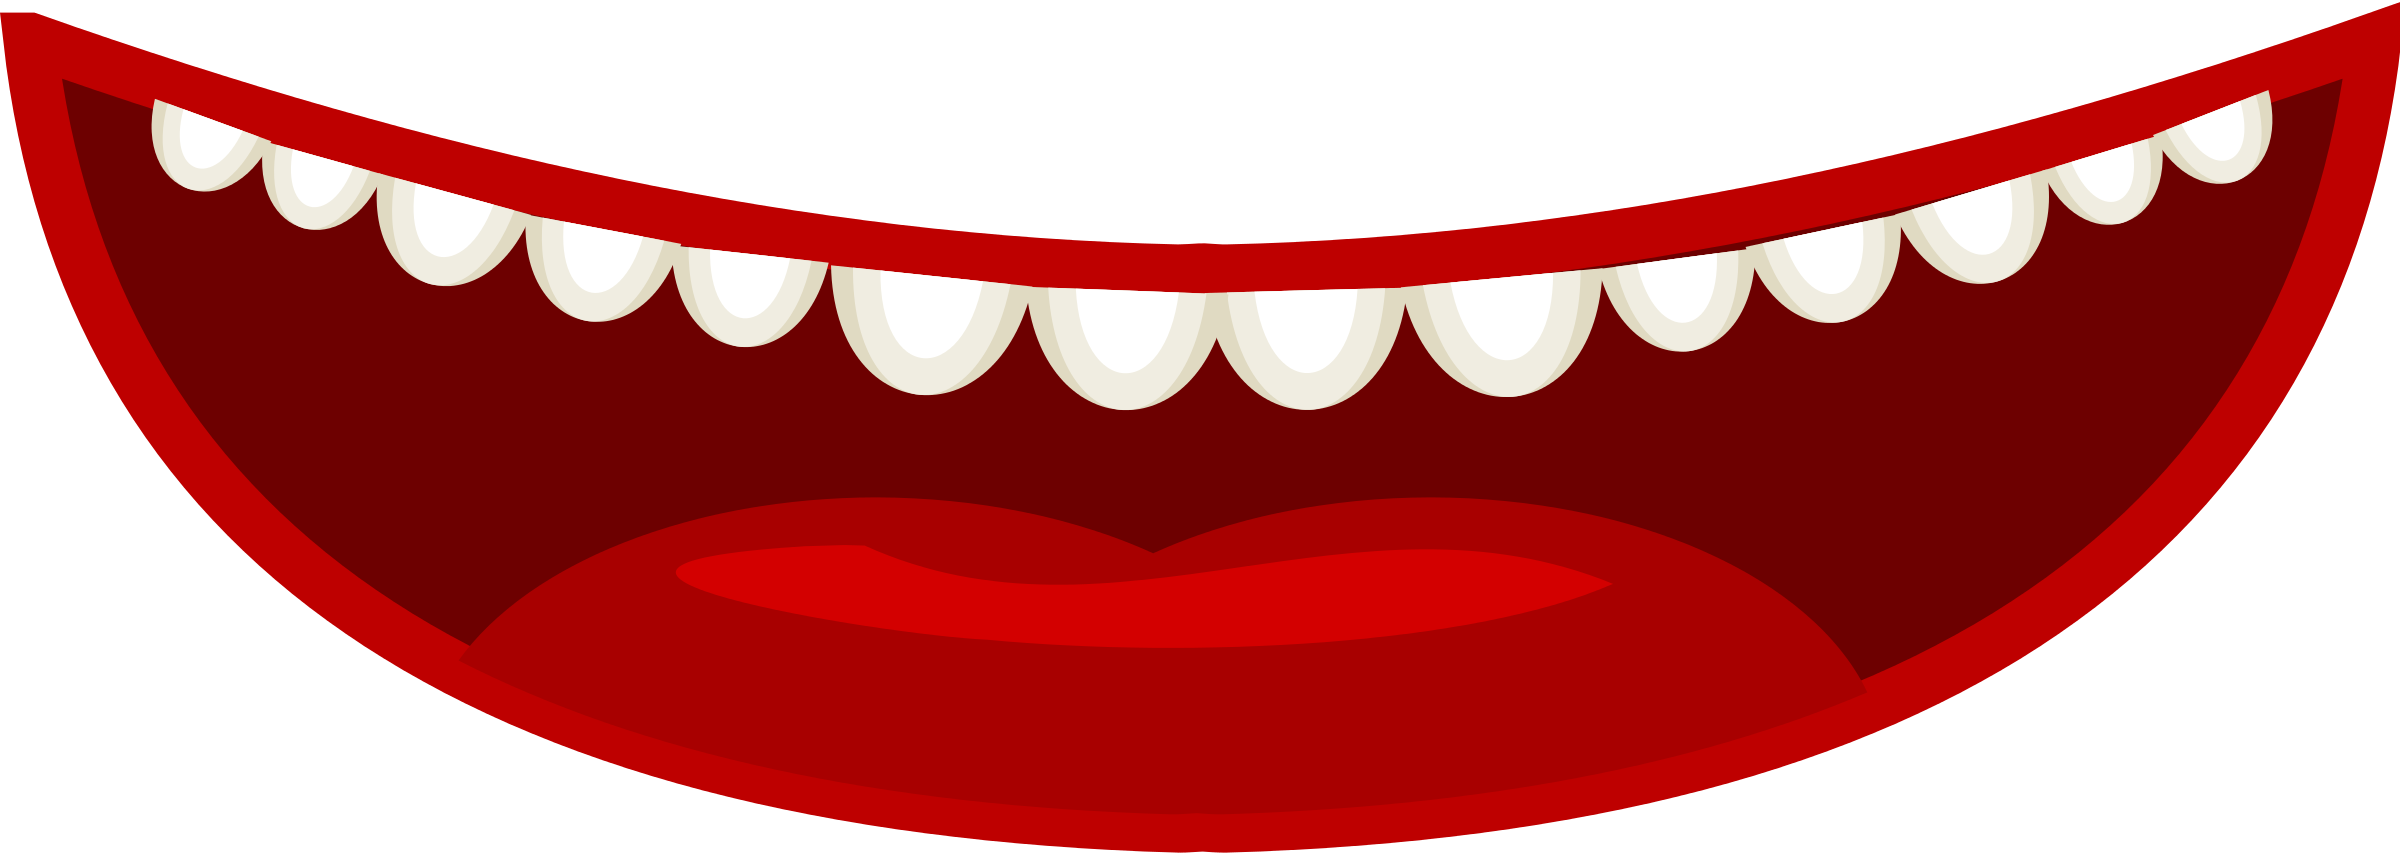 2400x853 Mouth Clipart 4